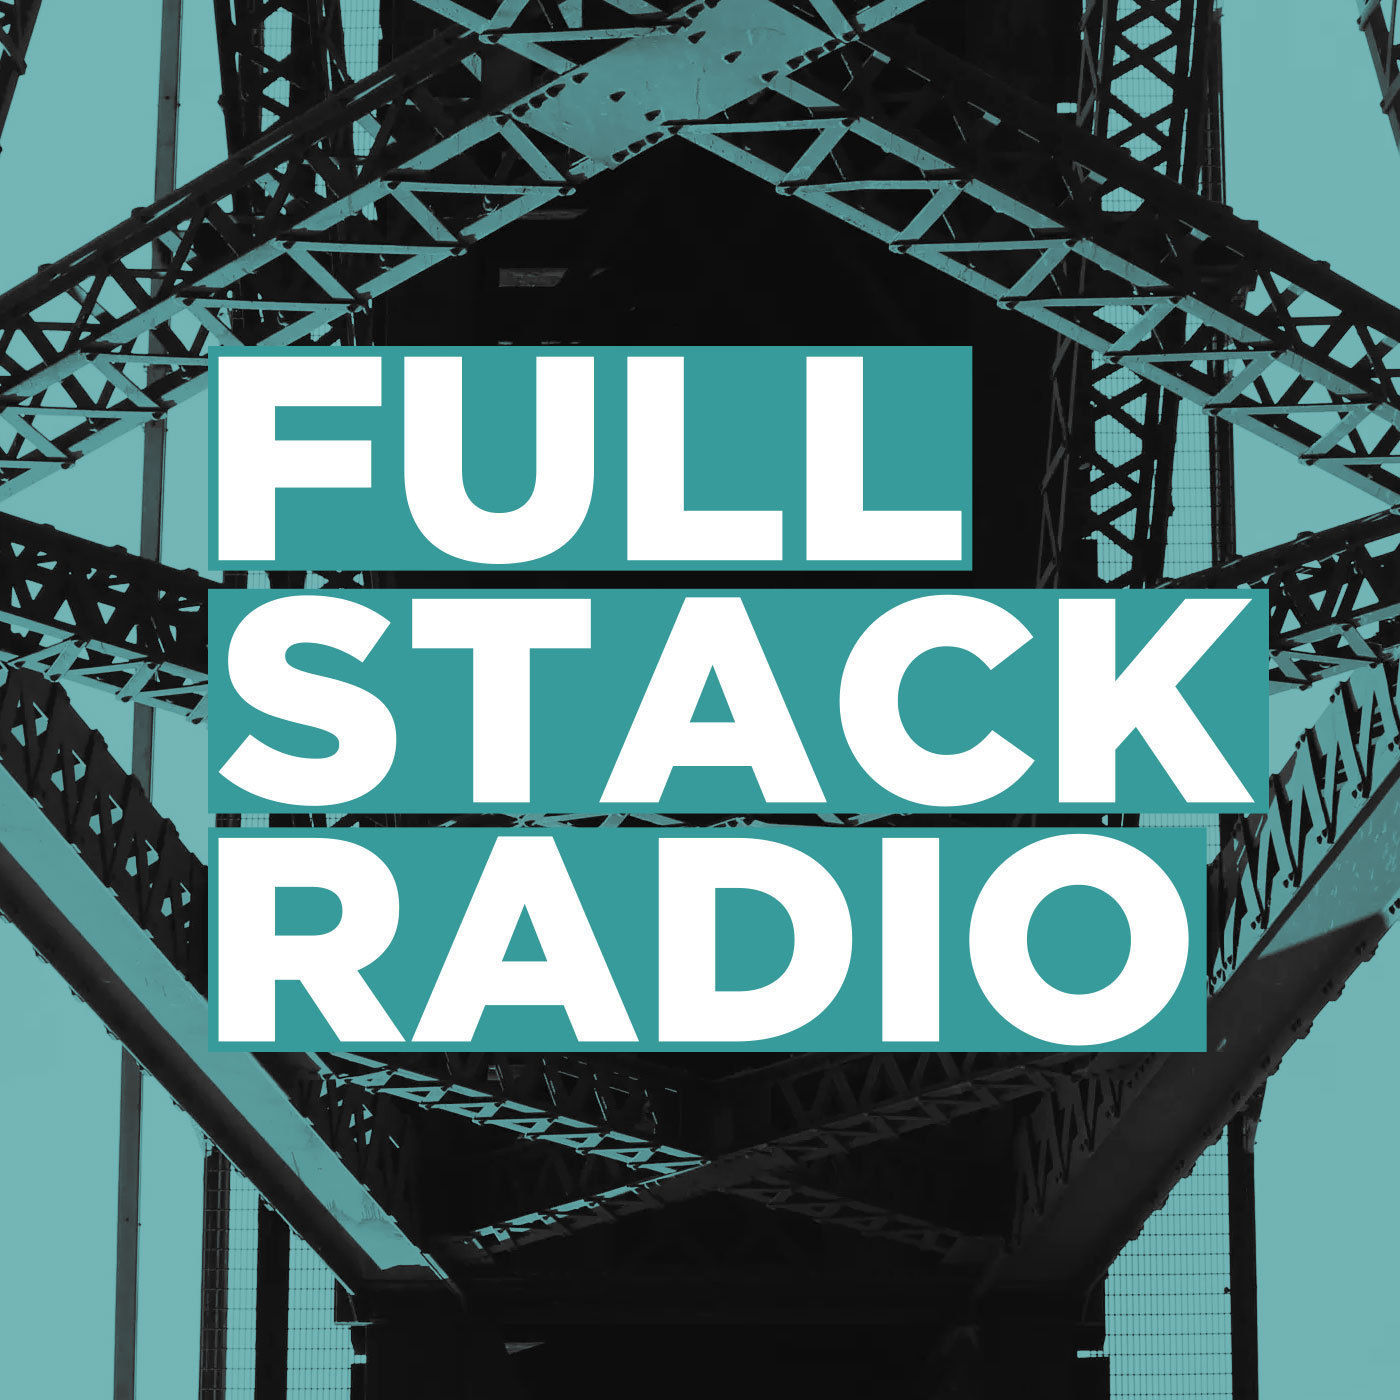 Podcast artwork for Full Stack Radio